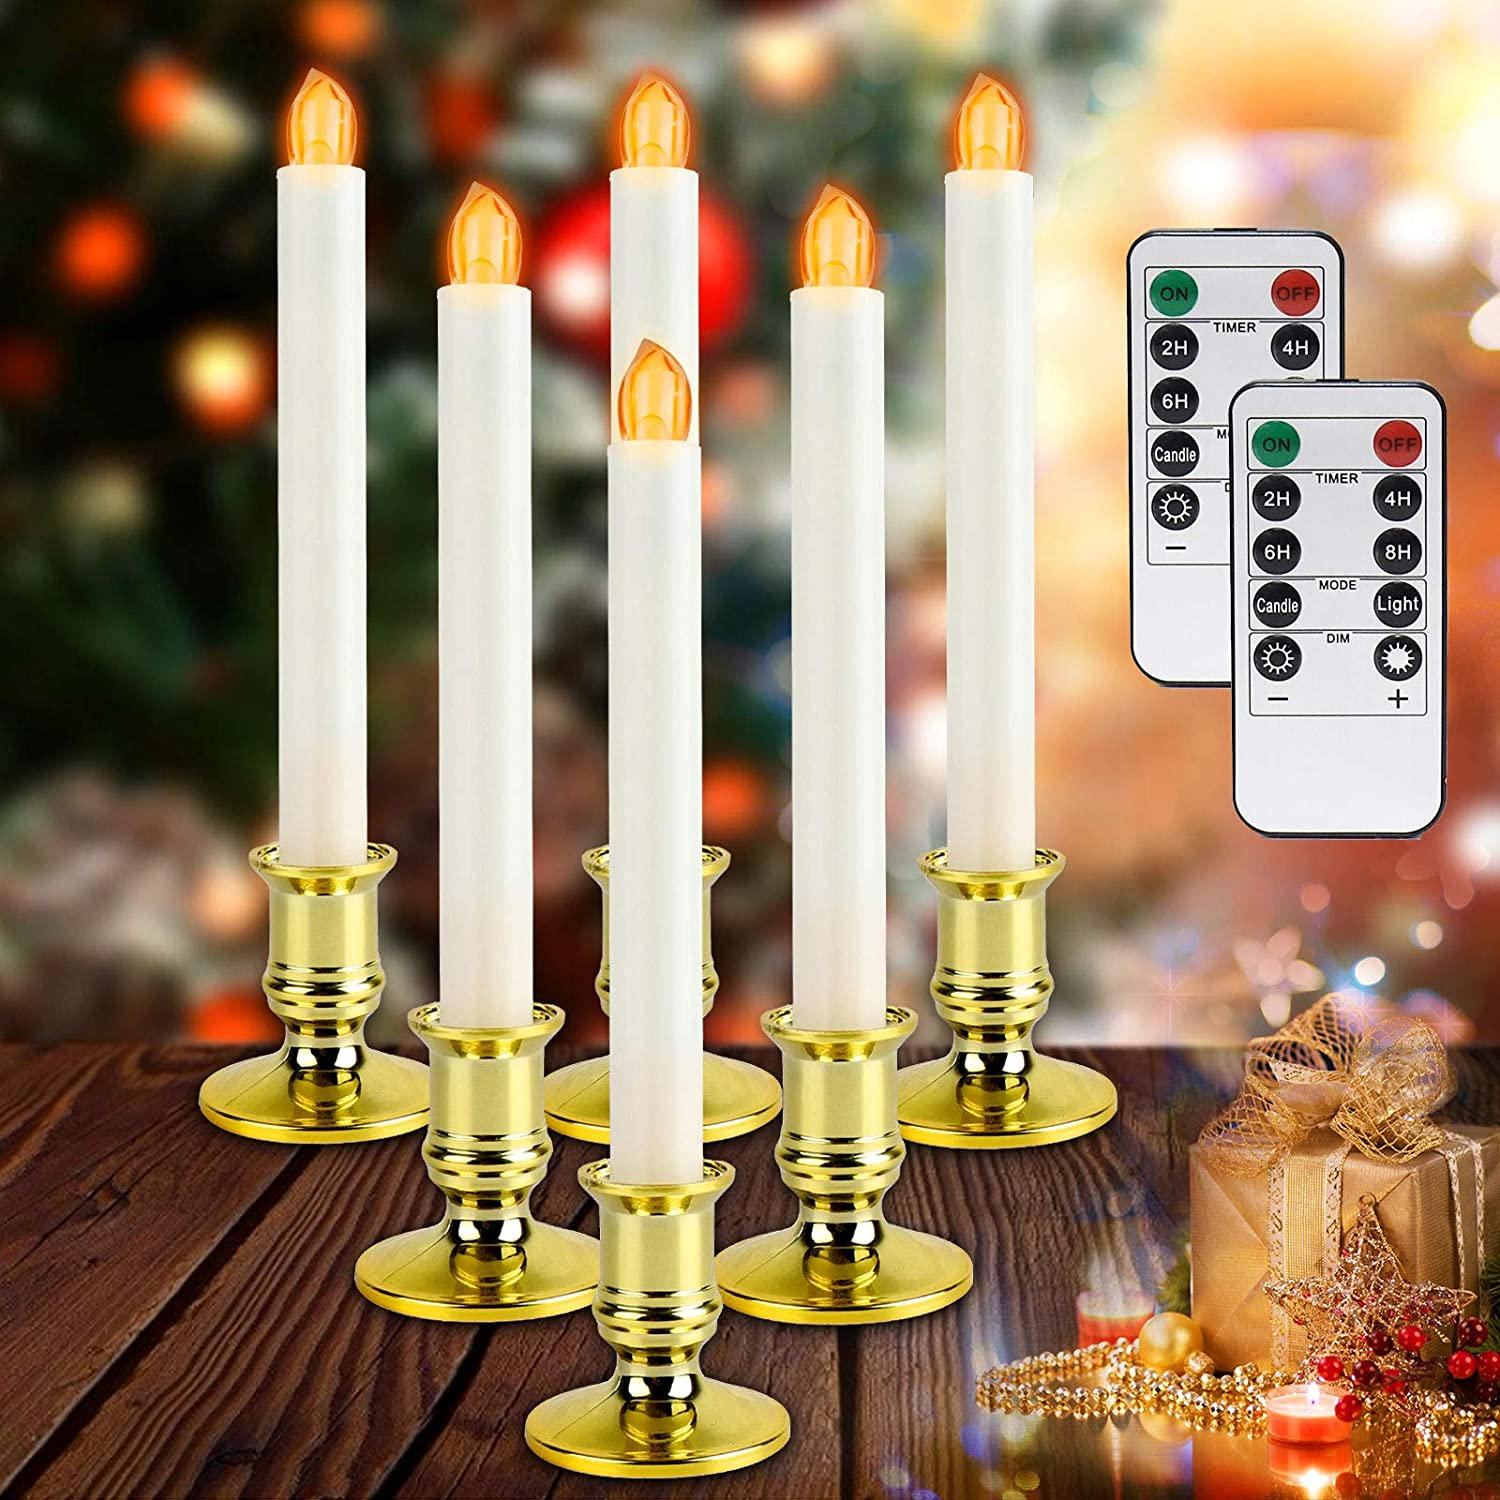 Christmas Window Candles Lights - 6 Pack Flameless Battery Operated Taper Candles with 2 Remote Timer, Led Electric Candle Light with Removable Golden Holder, Suction Cup, Christmas Decor Candles